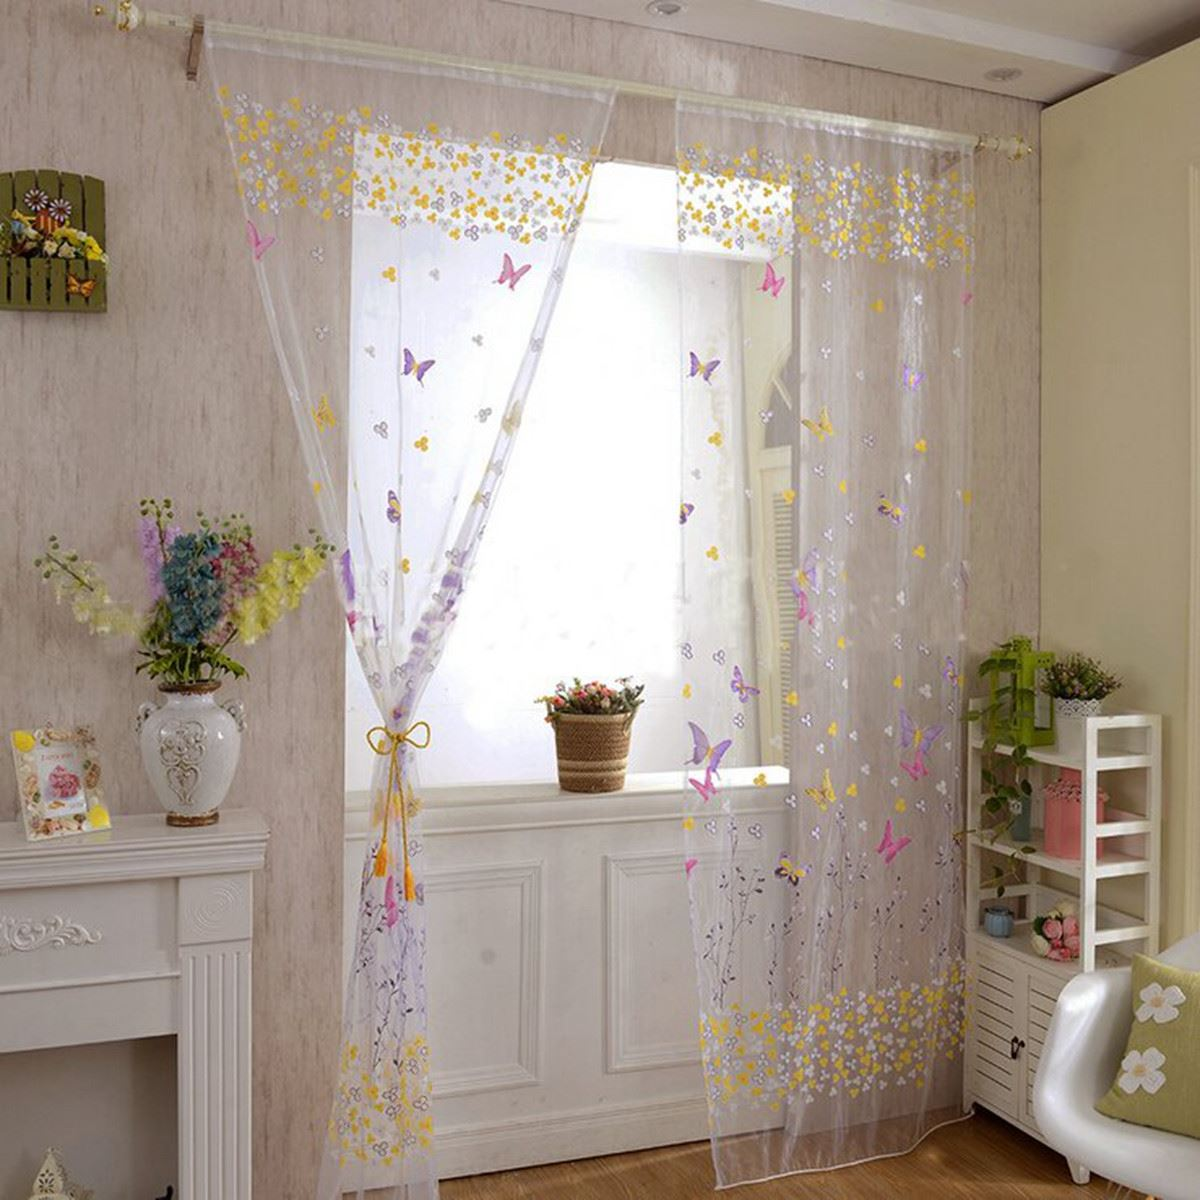 2016 Summer Butterfly Floral Tulle Door Window Curtain Voile Drape Panel Sheer Scarf Valances For Bedroom Living Room Decor